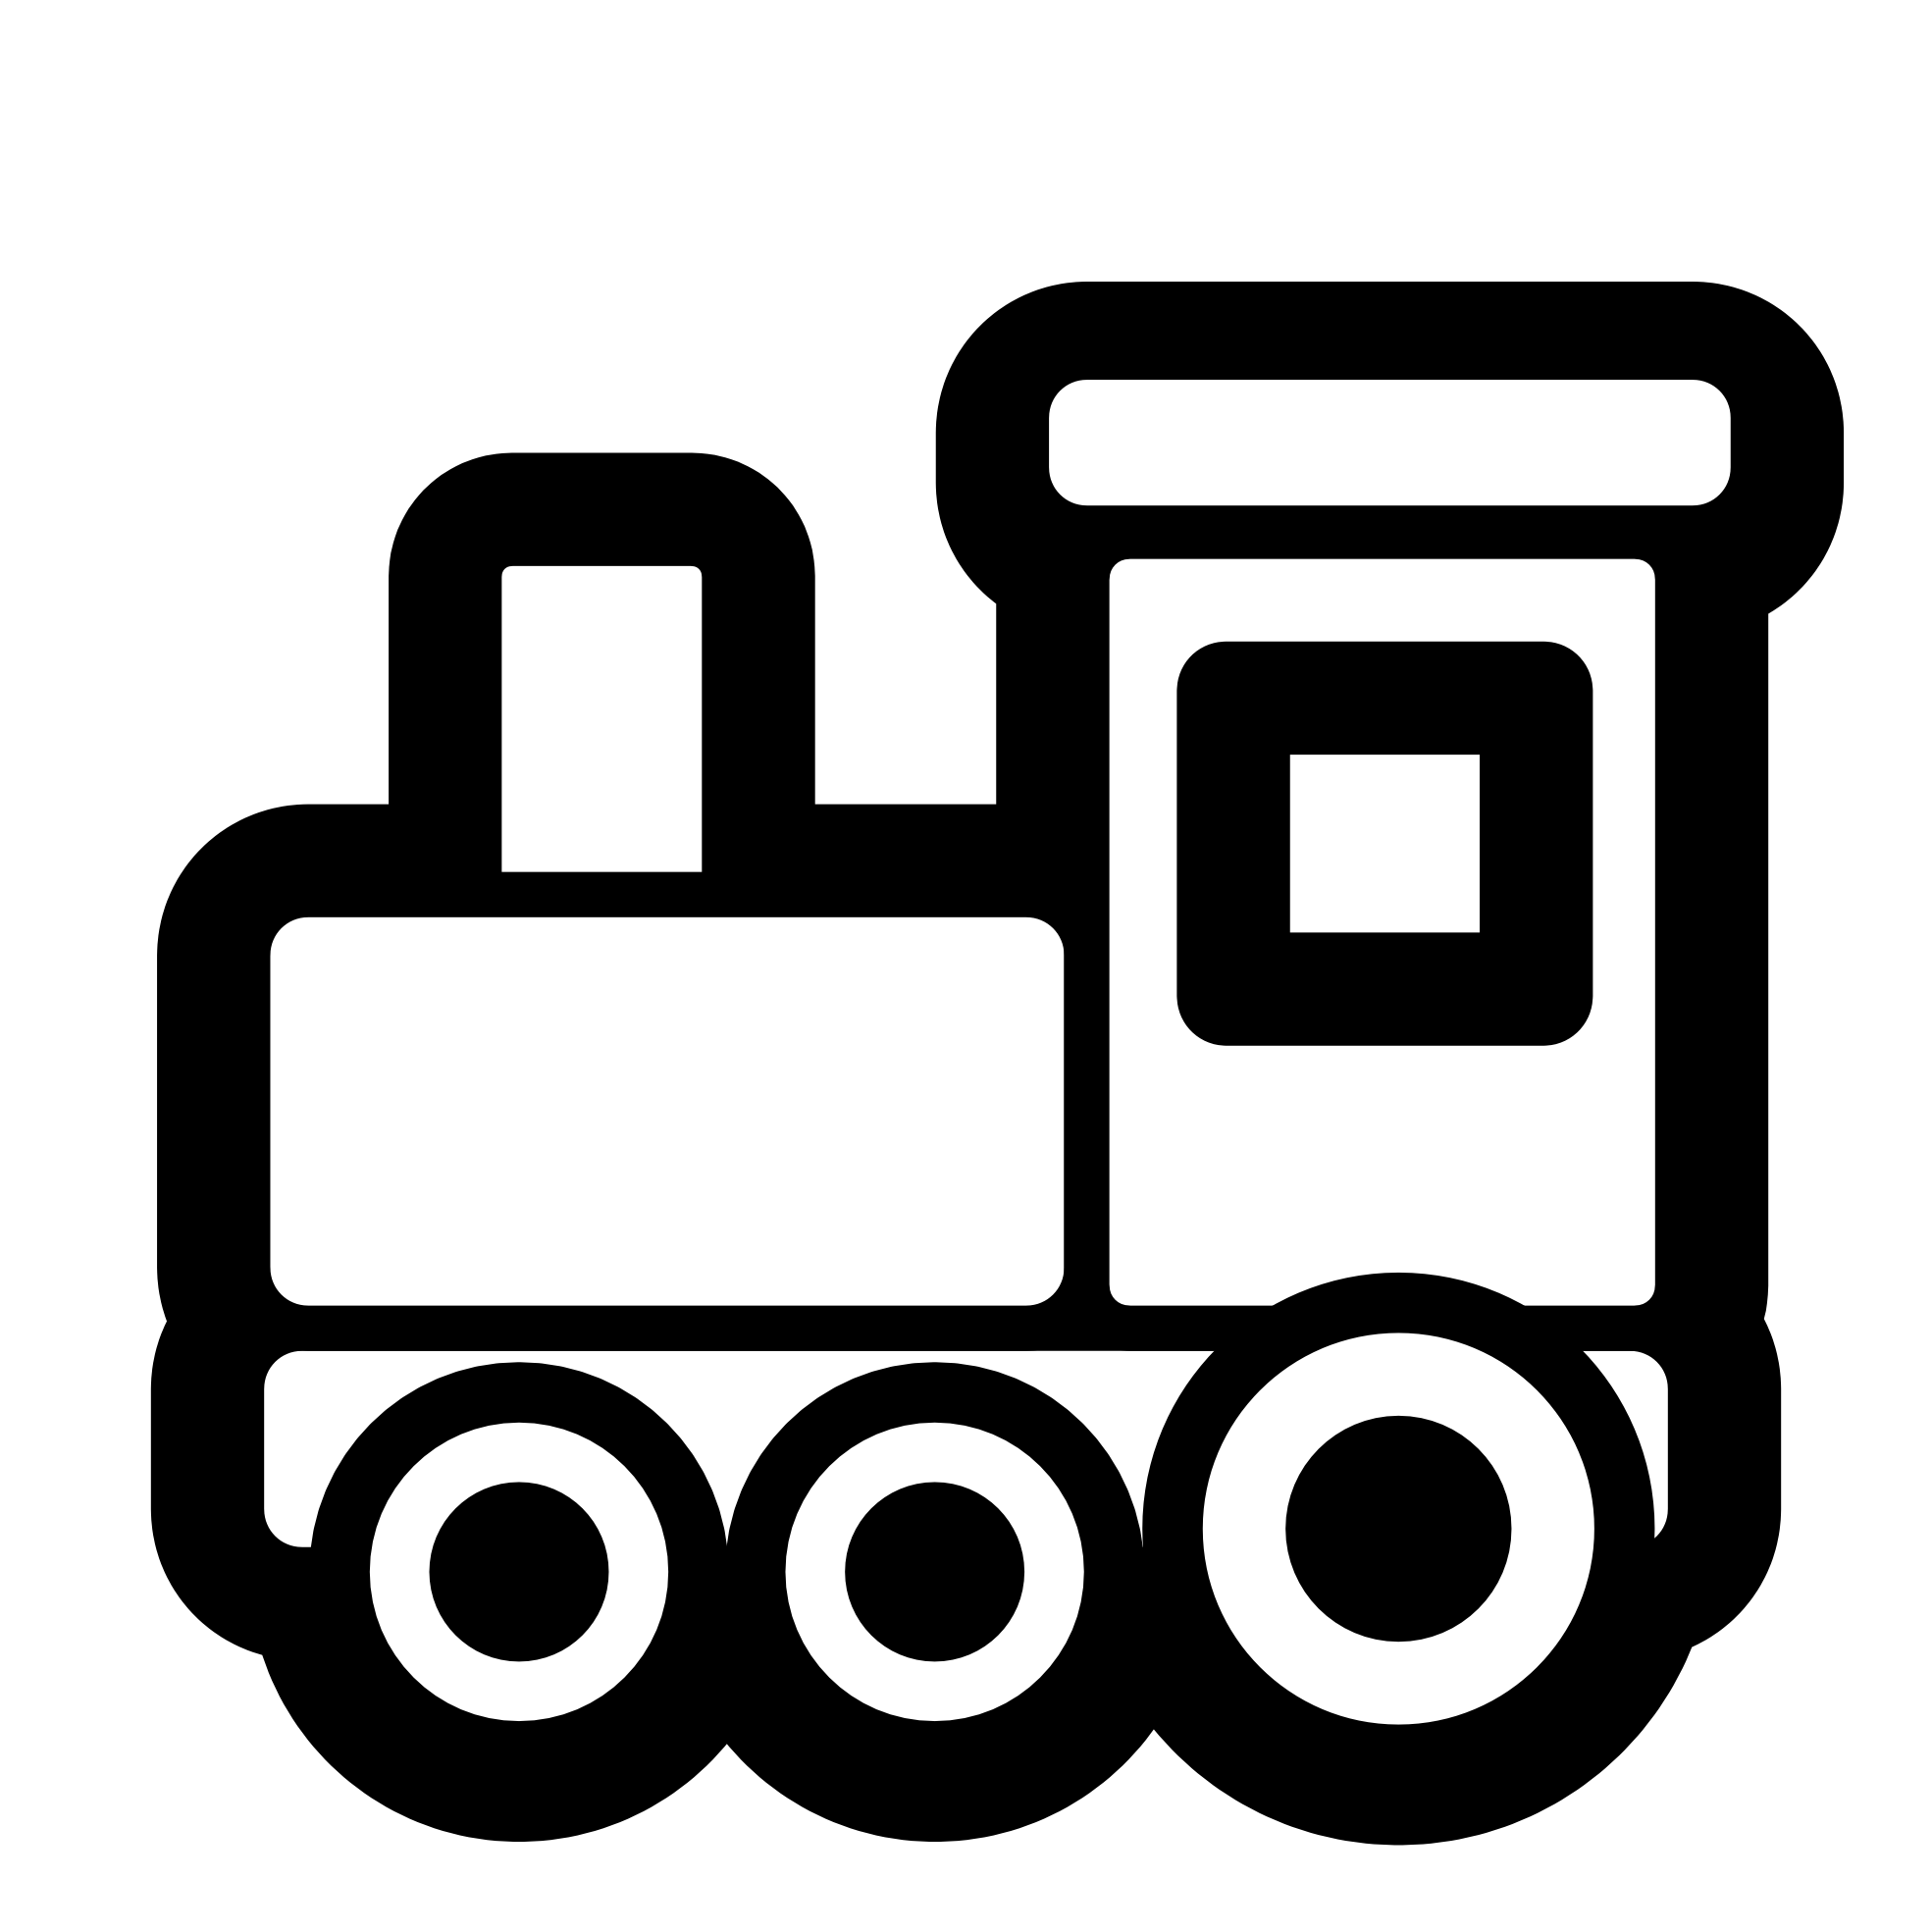 Train silhouette png. Toy icon free icons